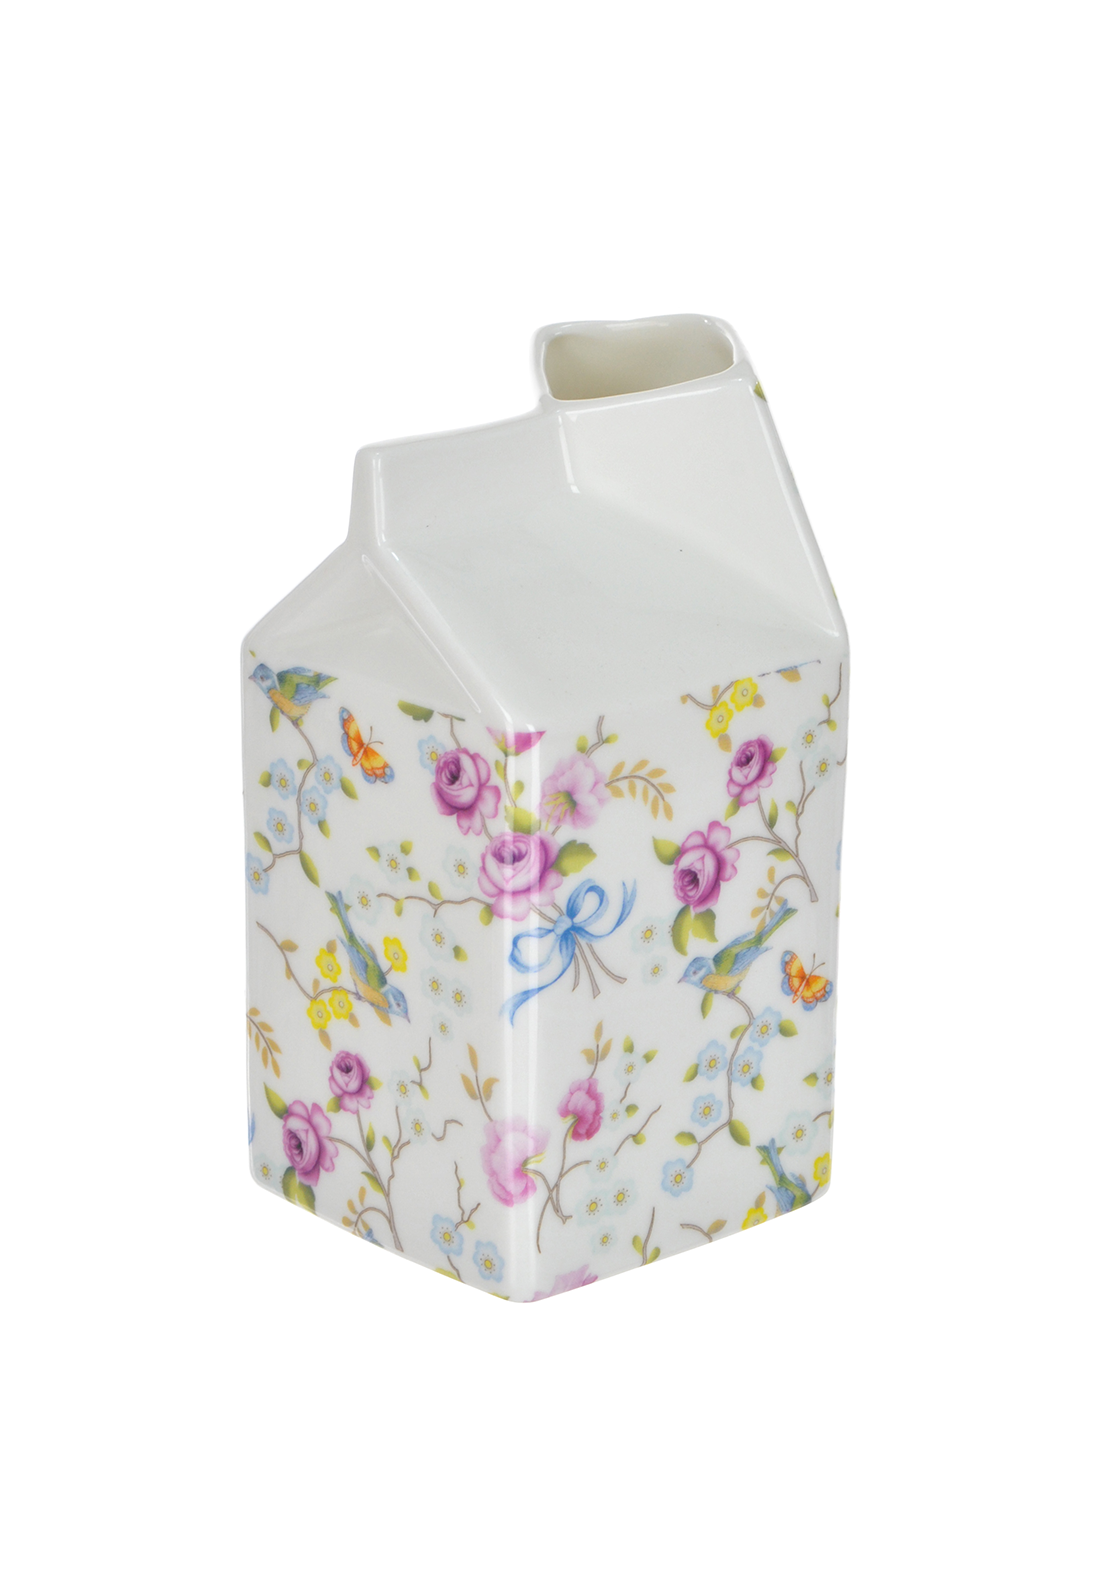 Shannon Bridge Ireland Bird Blossom Large Carton, White/Multi Floral Design